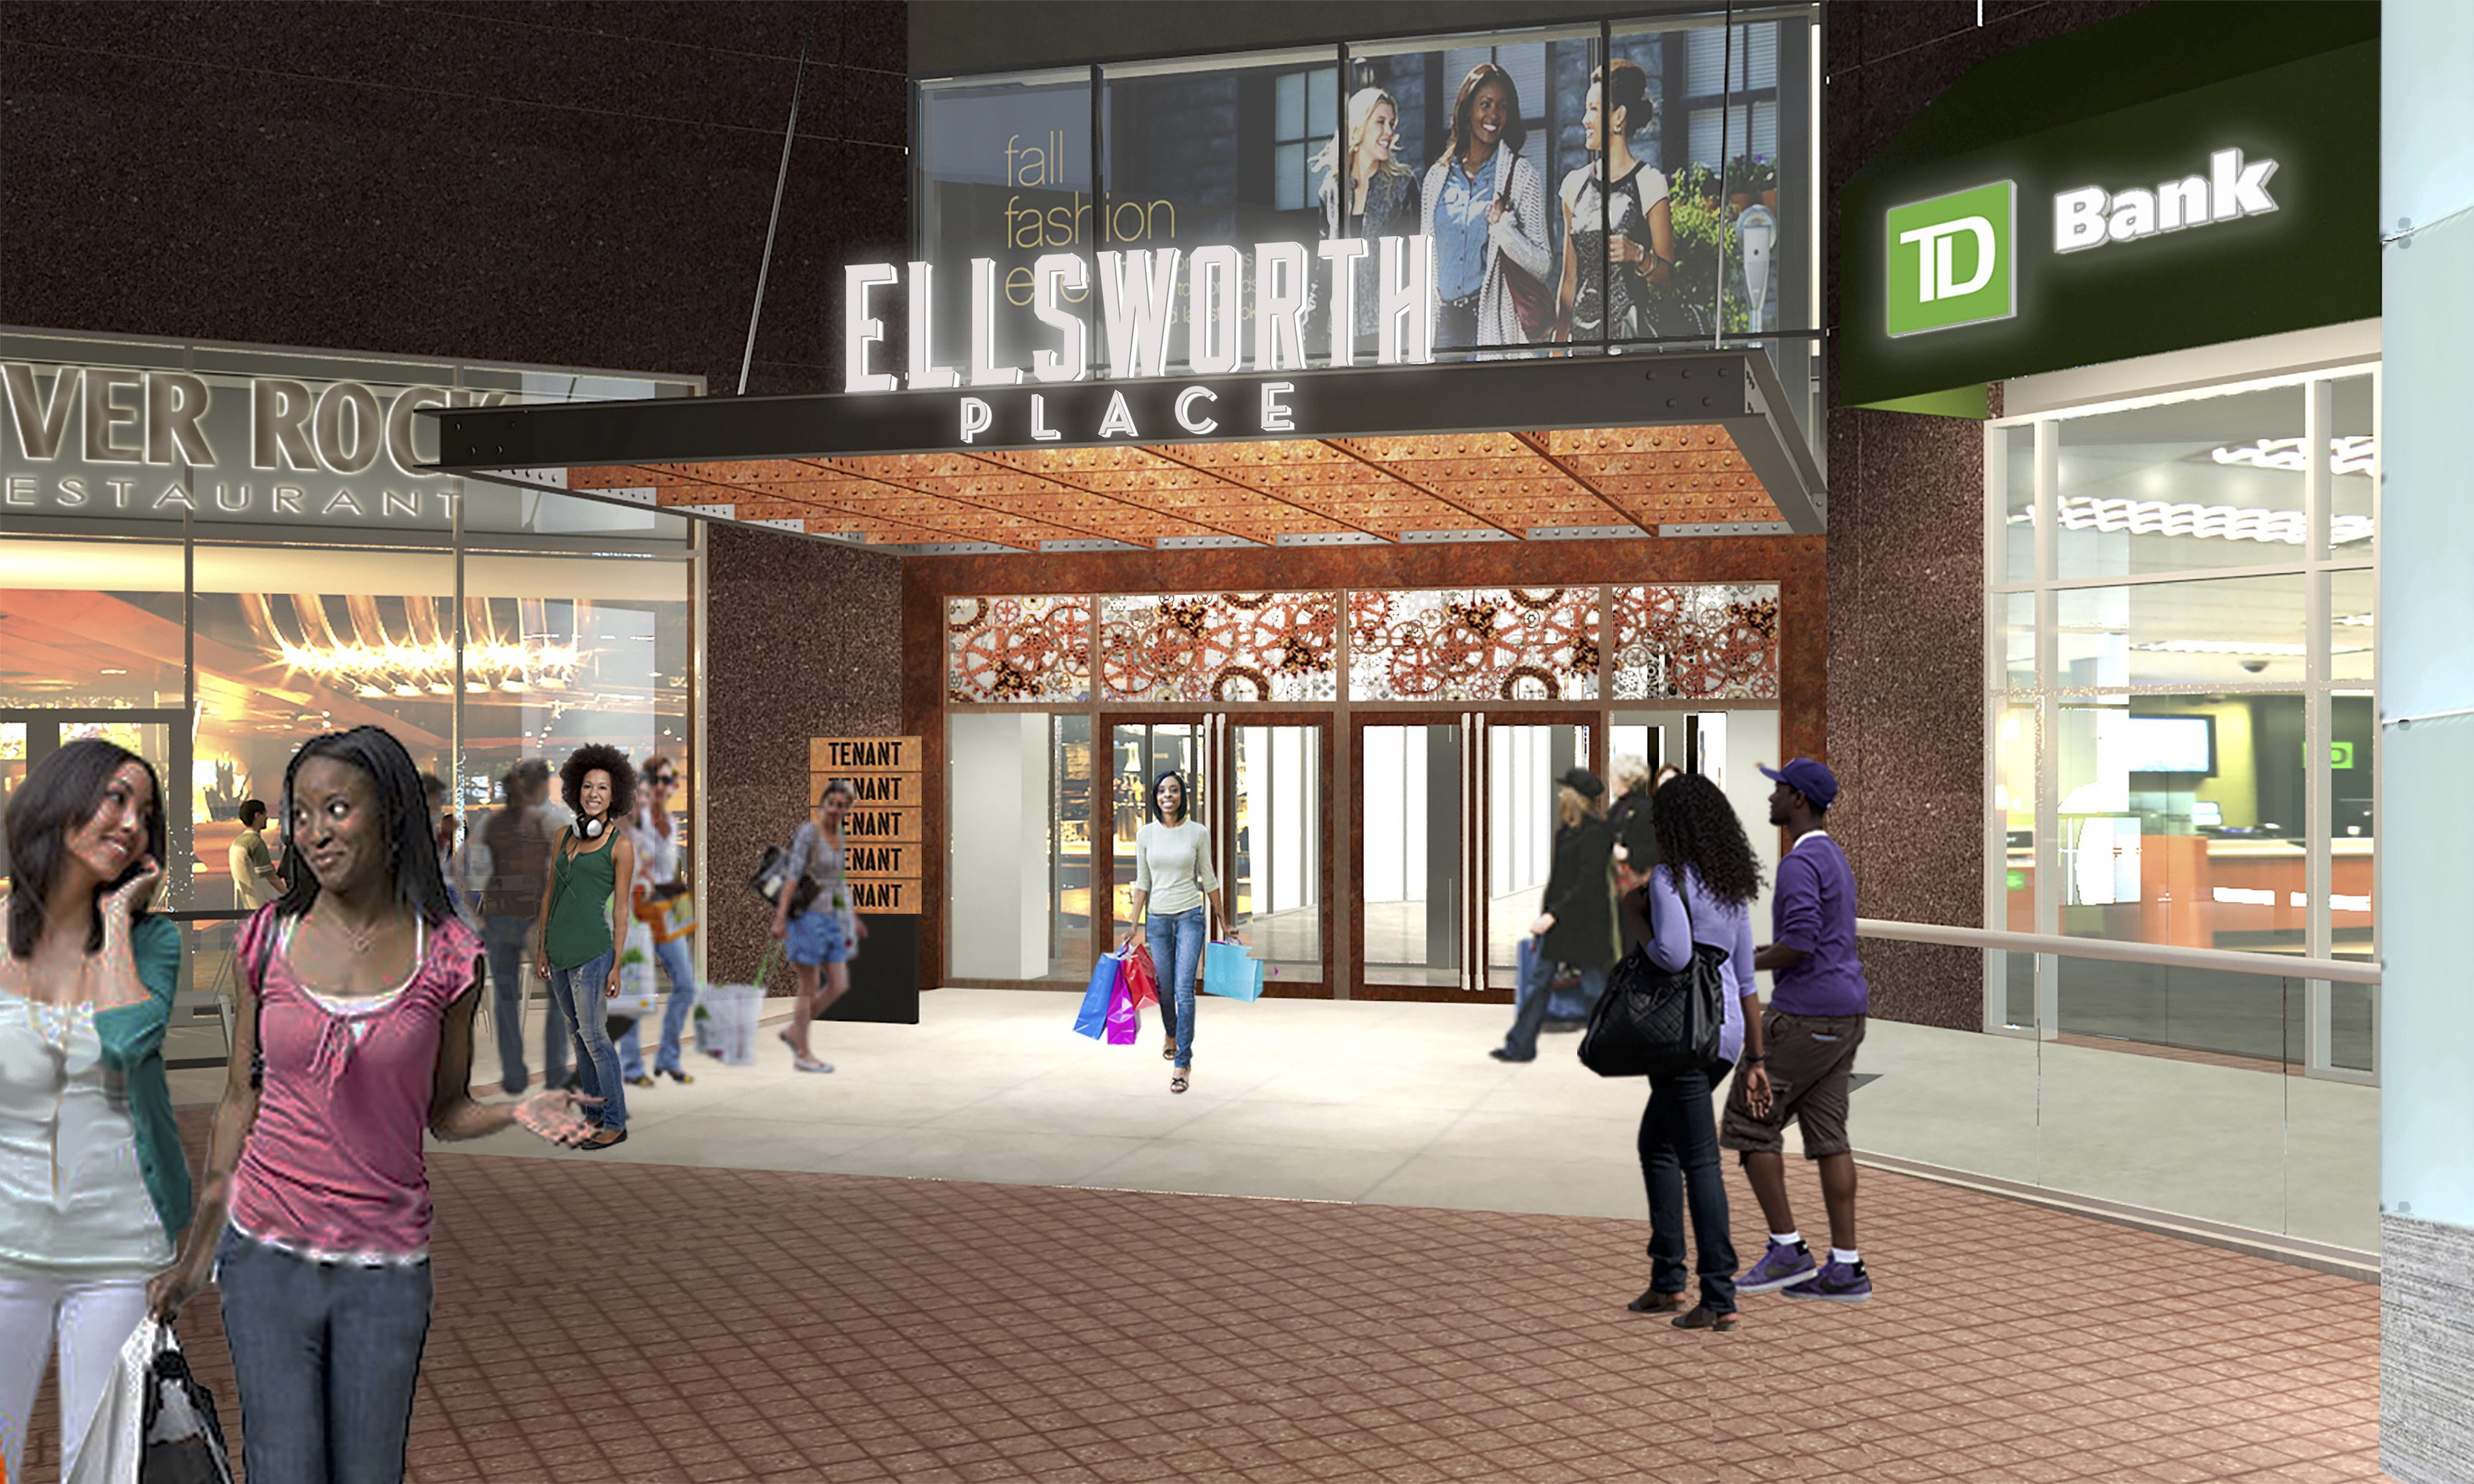 Pretty Exterior Rendering From Fenton Street Colesville Showing Itrenamed As Ellsworth Place Wikipedia Regal Silver Spring Summer Movies Regal Silver Spring Contact Number nice food Regal Silver Spring